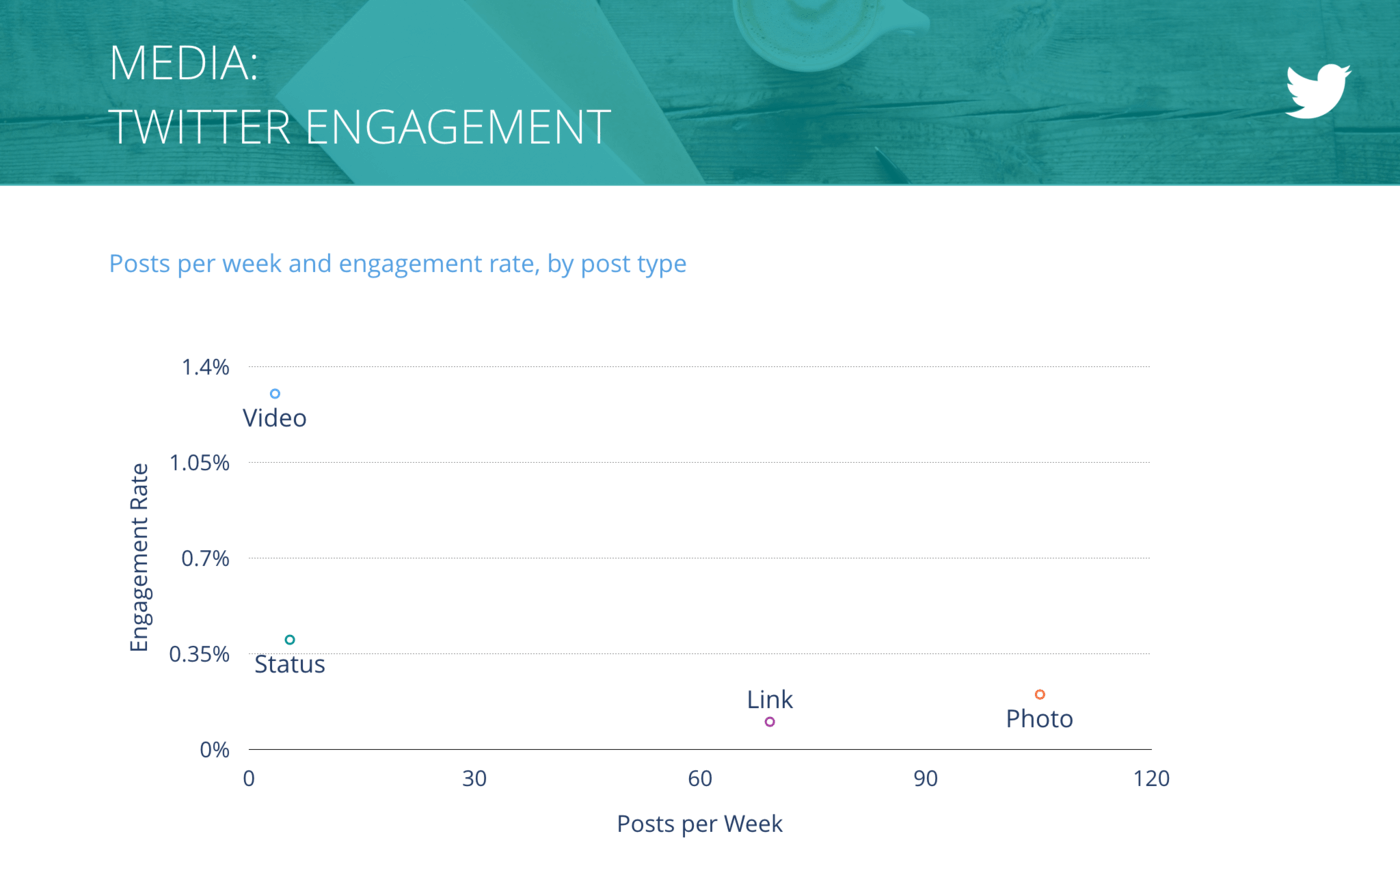 slide for Tweets per Week vs. Engagement Rate per Tweet, Media Companies